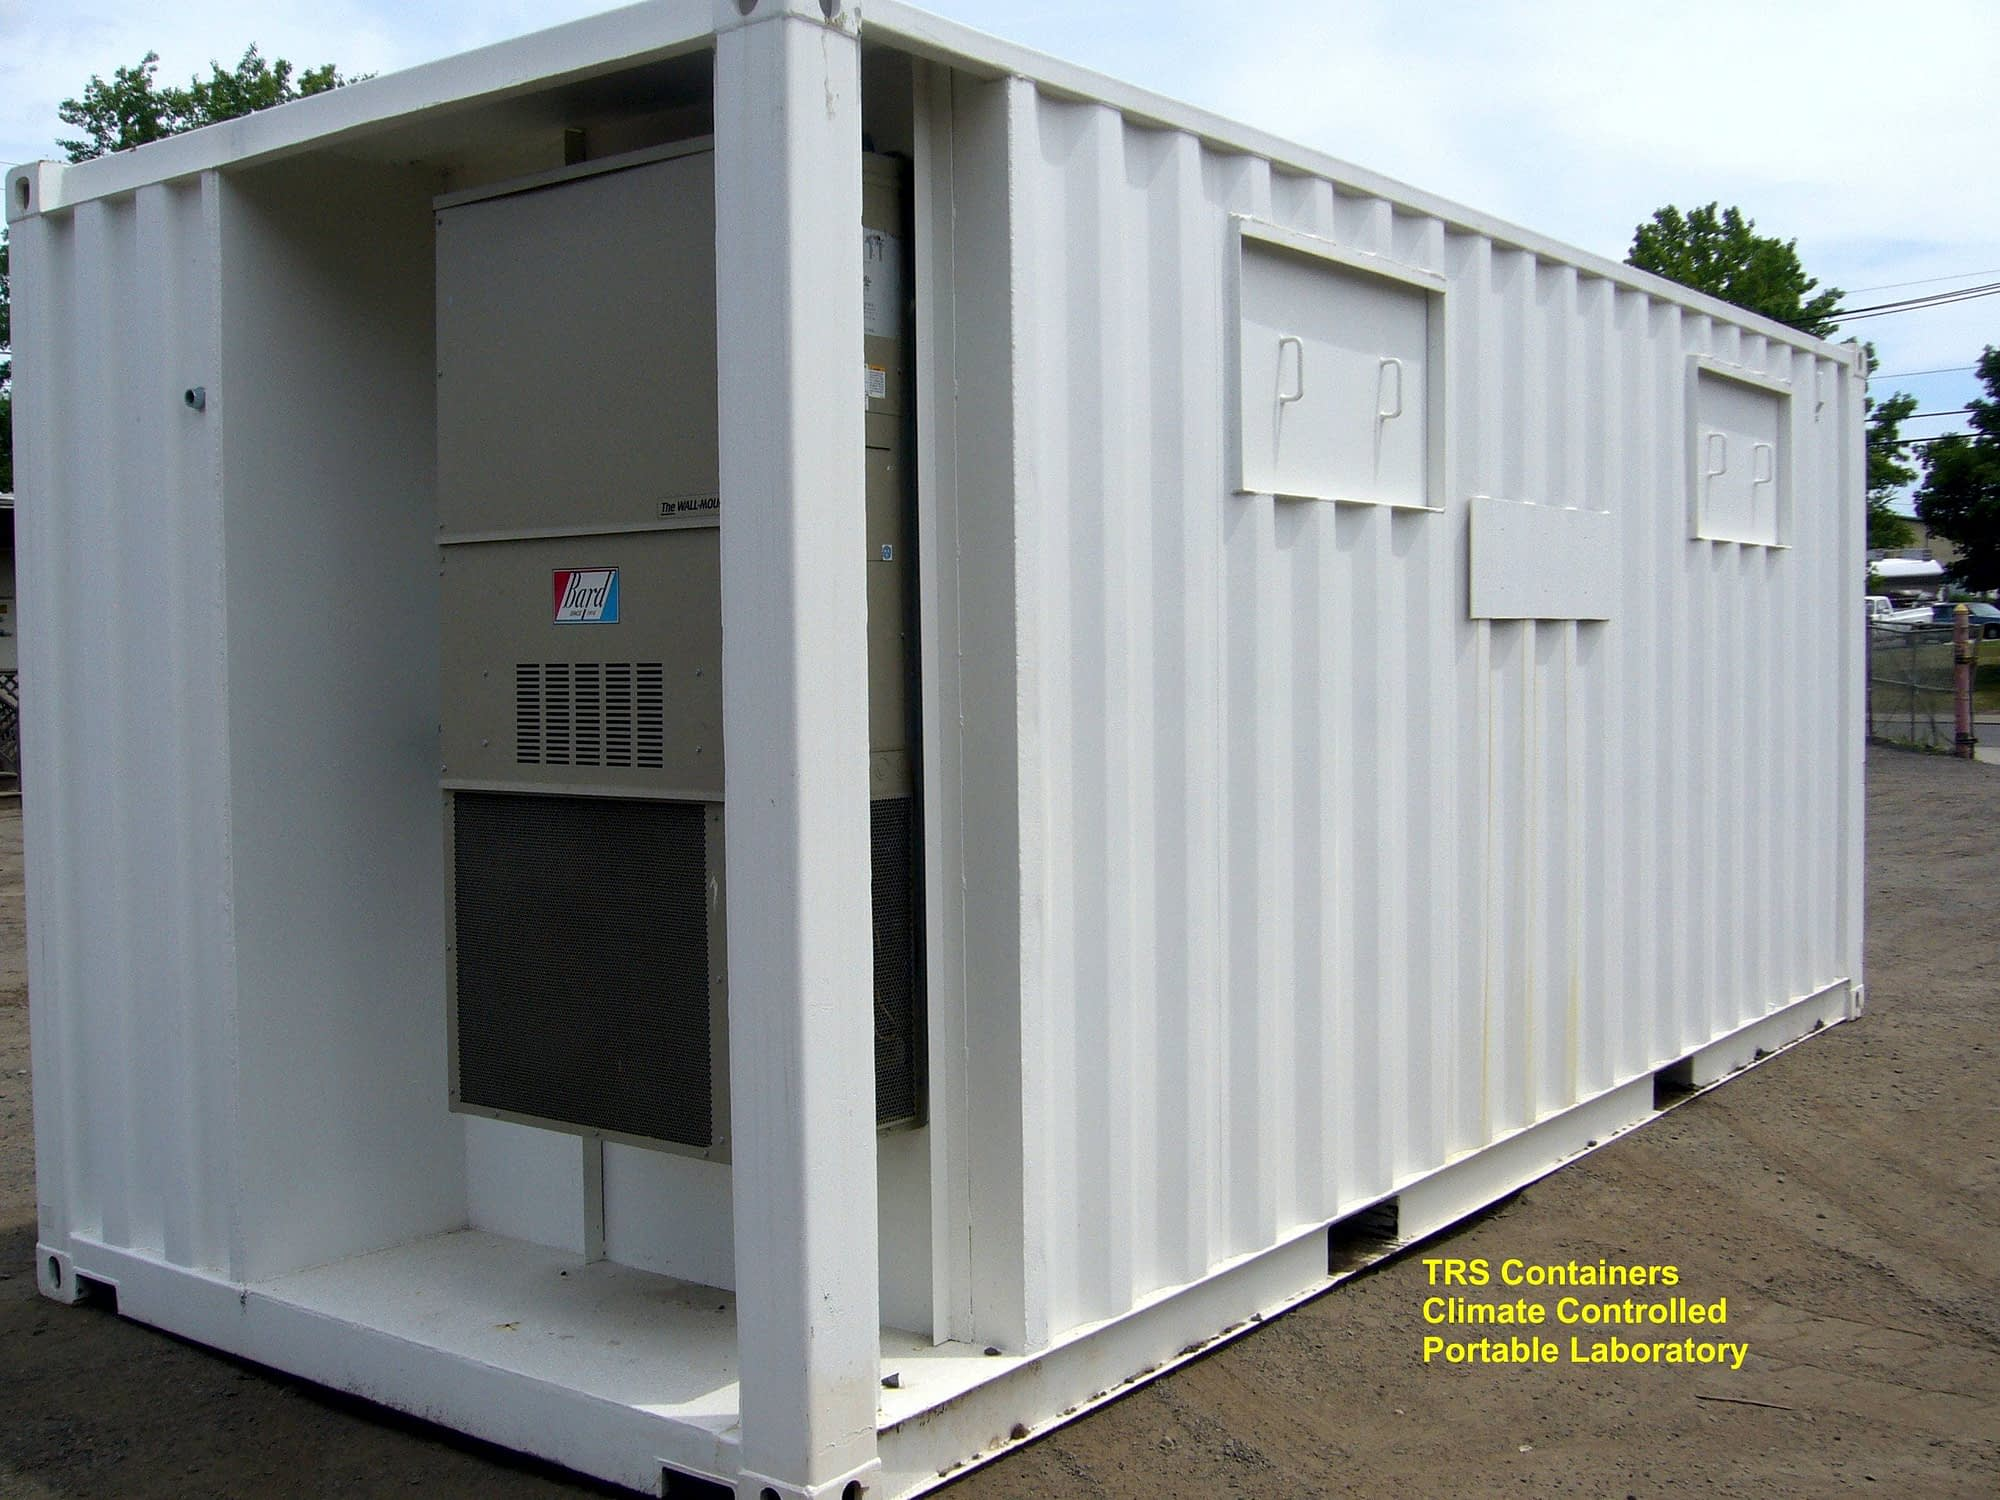 TRS climate control portable containers have 1 or 2 Bard HVAC units